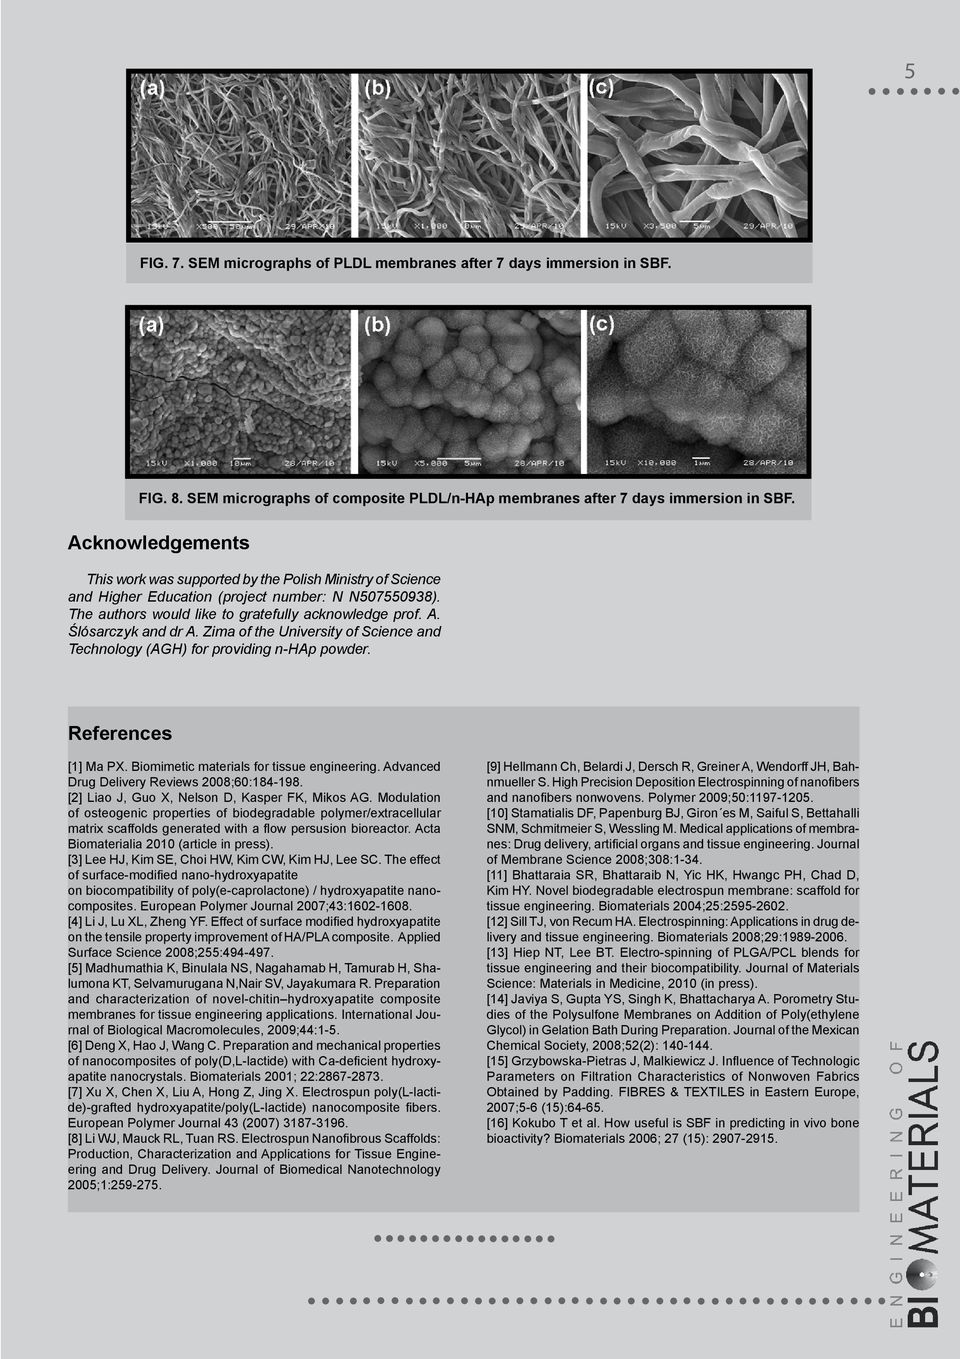 Ślósarczyk and dr A. Zima of the University of Science and Technology (AGH) for providing n-hap powder. References [1] Ma PX. Biomimetic materials for tissue engineering.